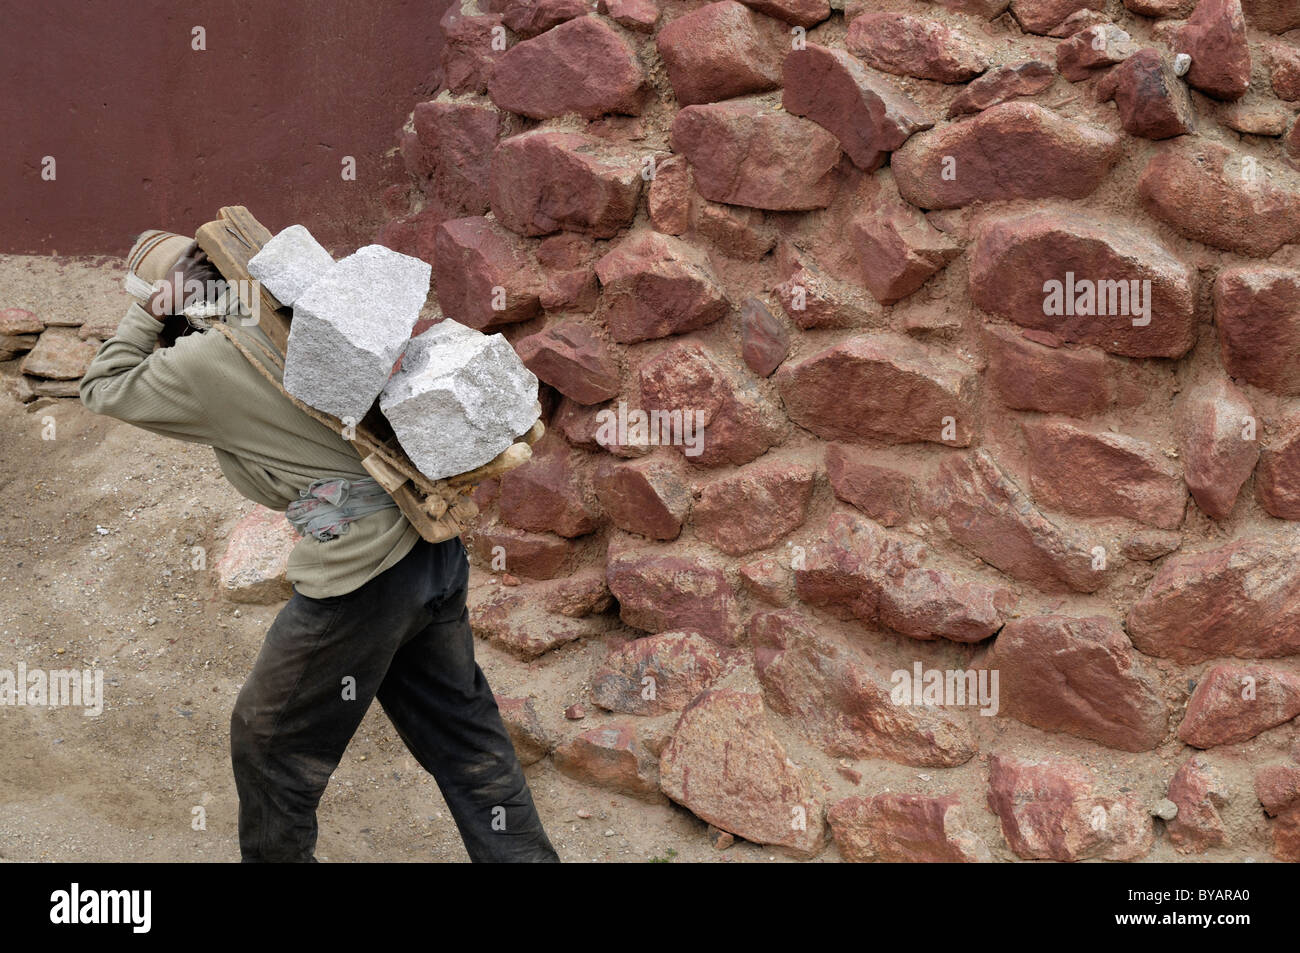 Manual labourers in India. - Stock Image